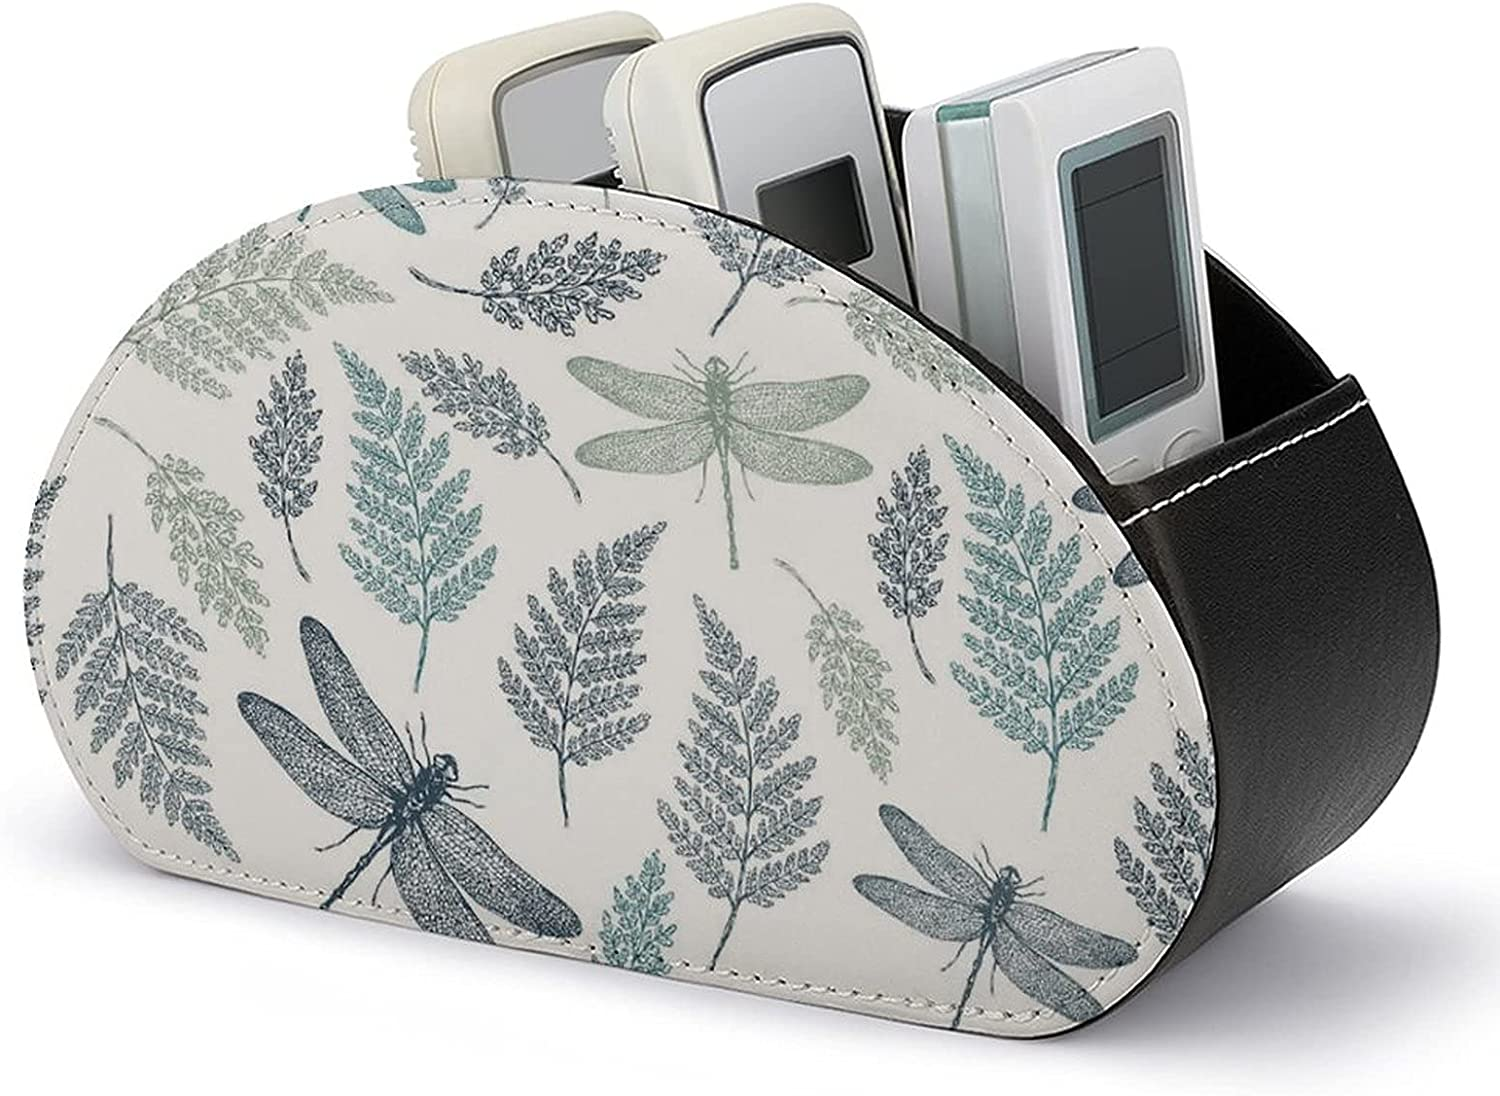 Floral Dragonfly Ranking TOP9 Leaves White Remote Holders Organizer B famous Control